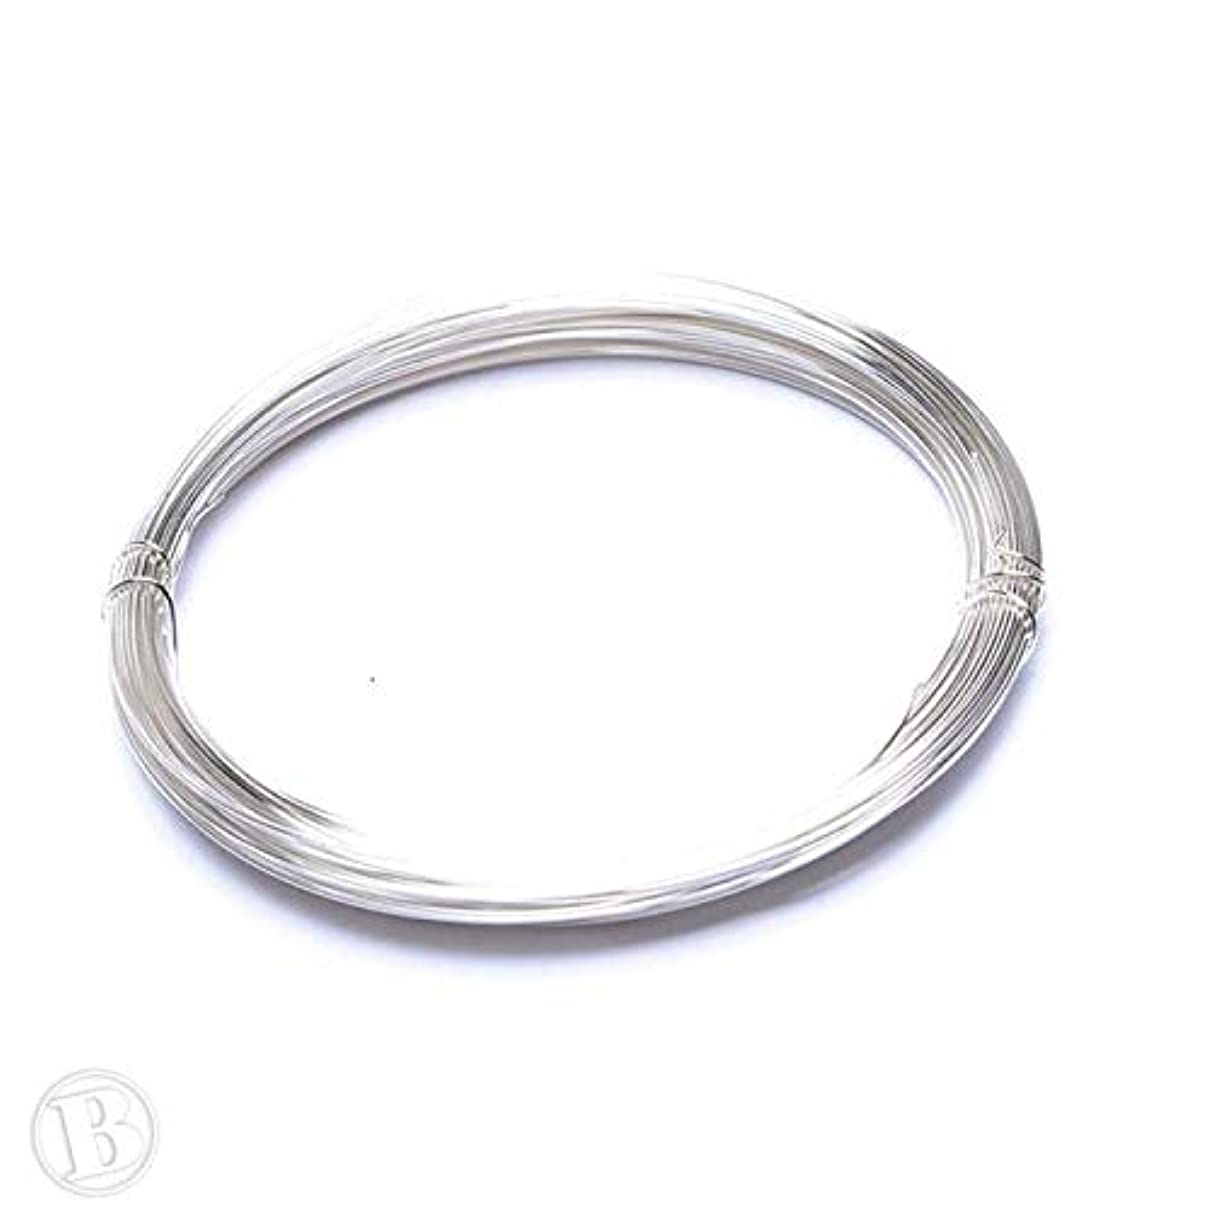 Beads Unlimited Wire, Silver Plated, 0.4mm